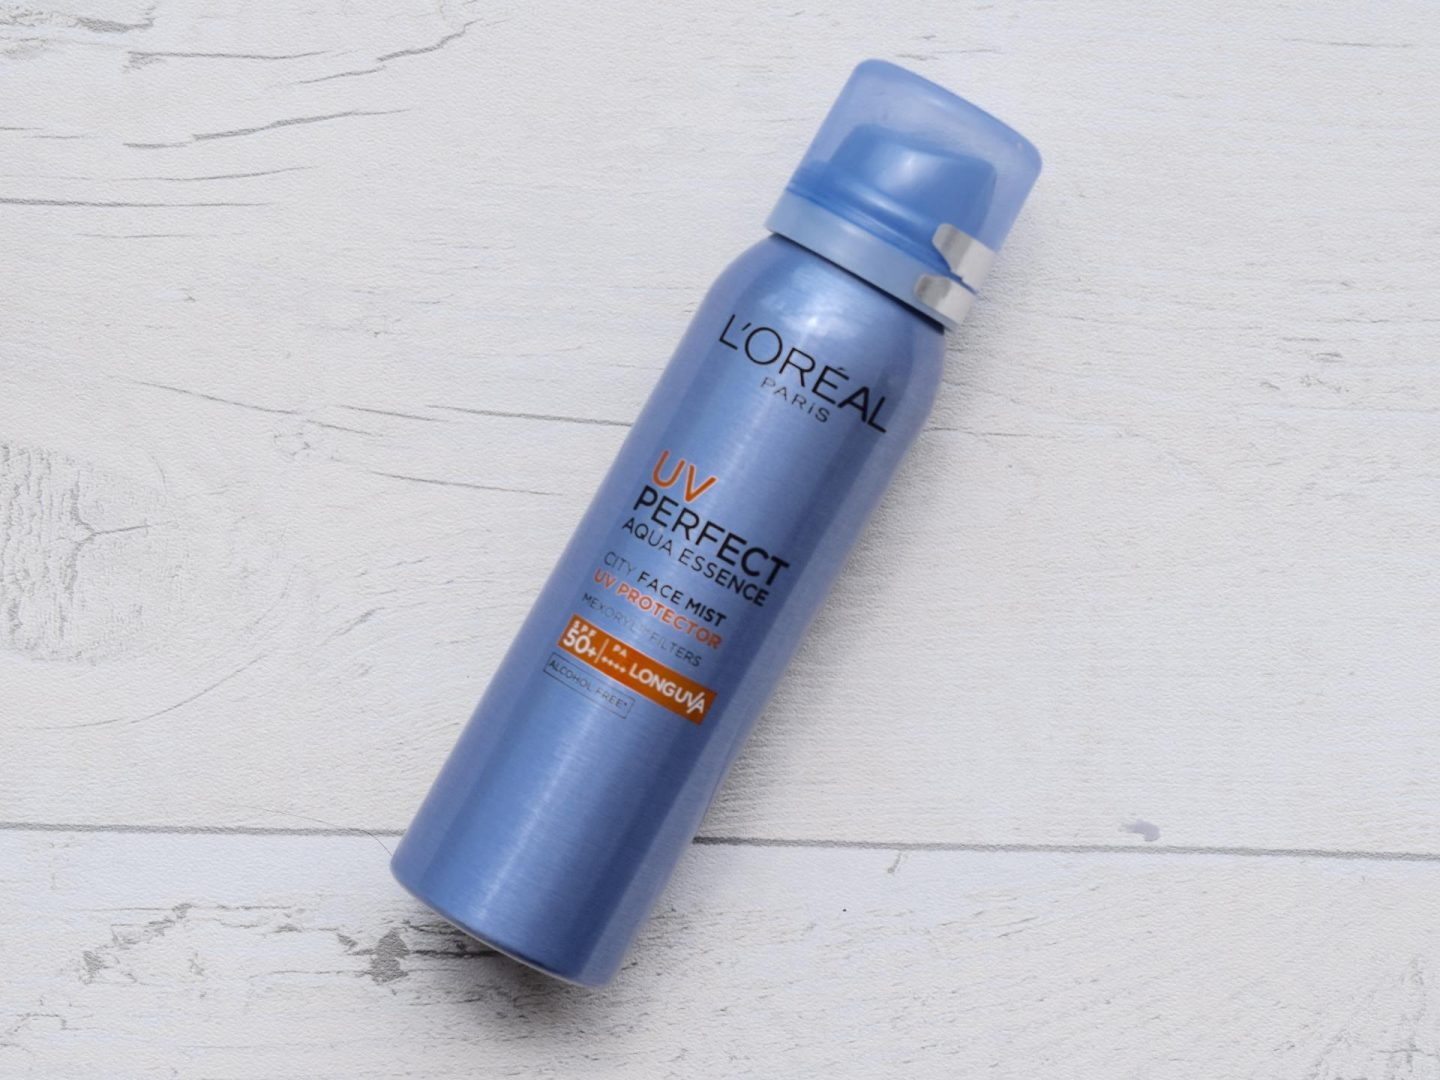 L'oreal UV Perfect Aqua Essence City Face Mist SPF50